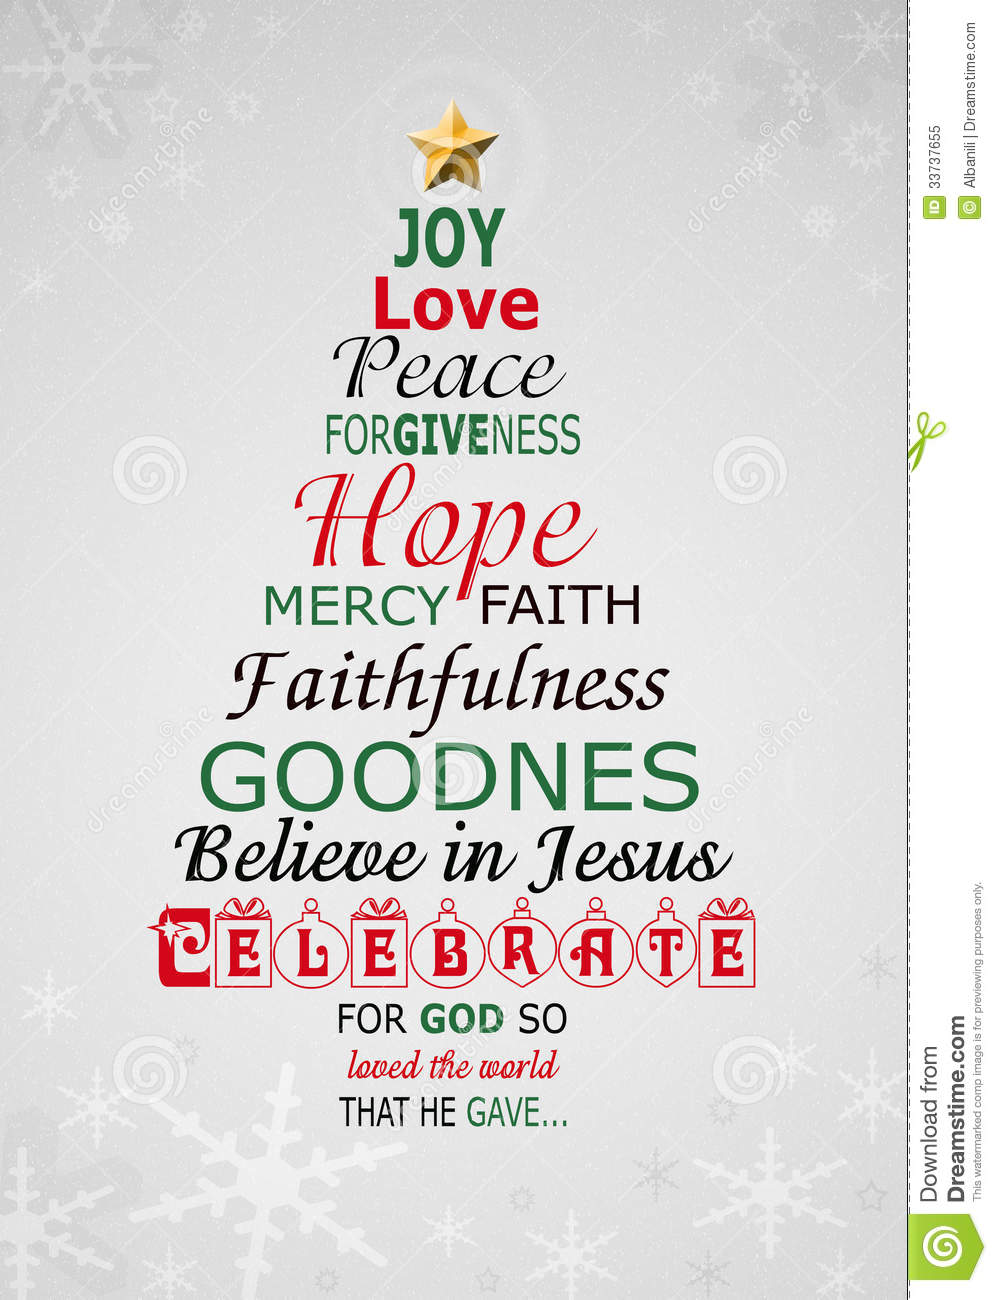 Christmas christian message clipart clipart freeuse download Christmas christian message clipart - ClipartFox clipart freeuse download